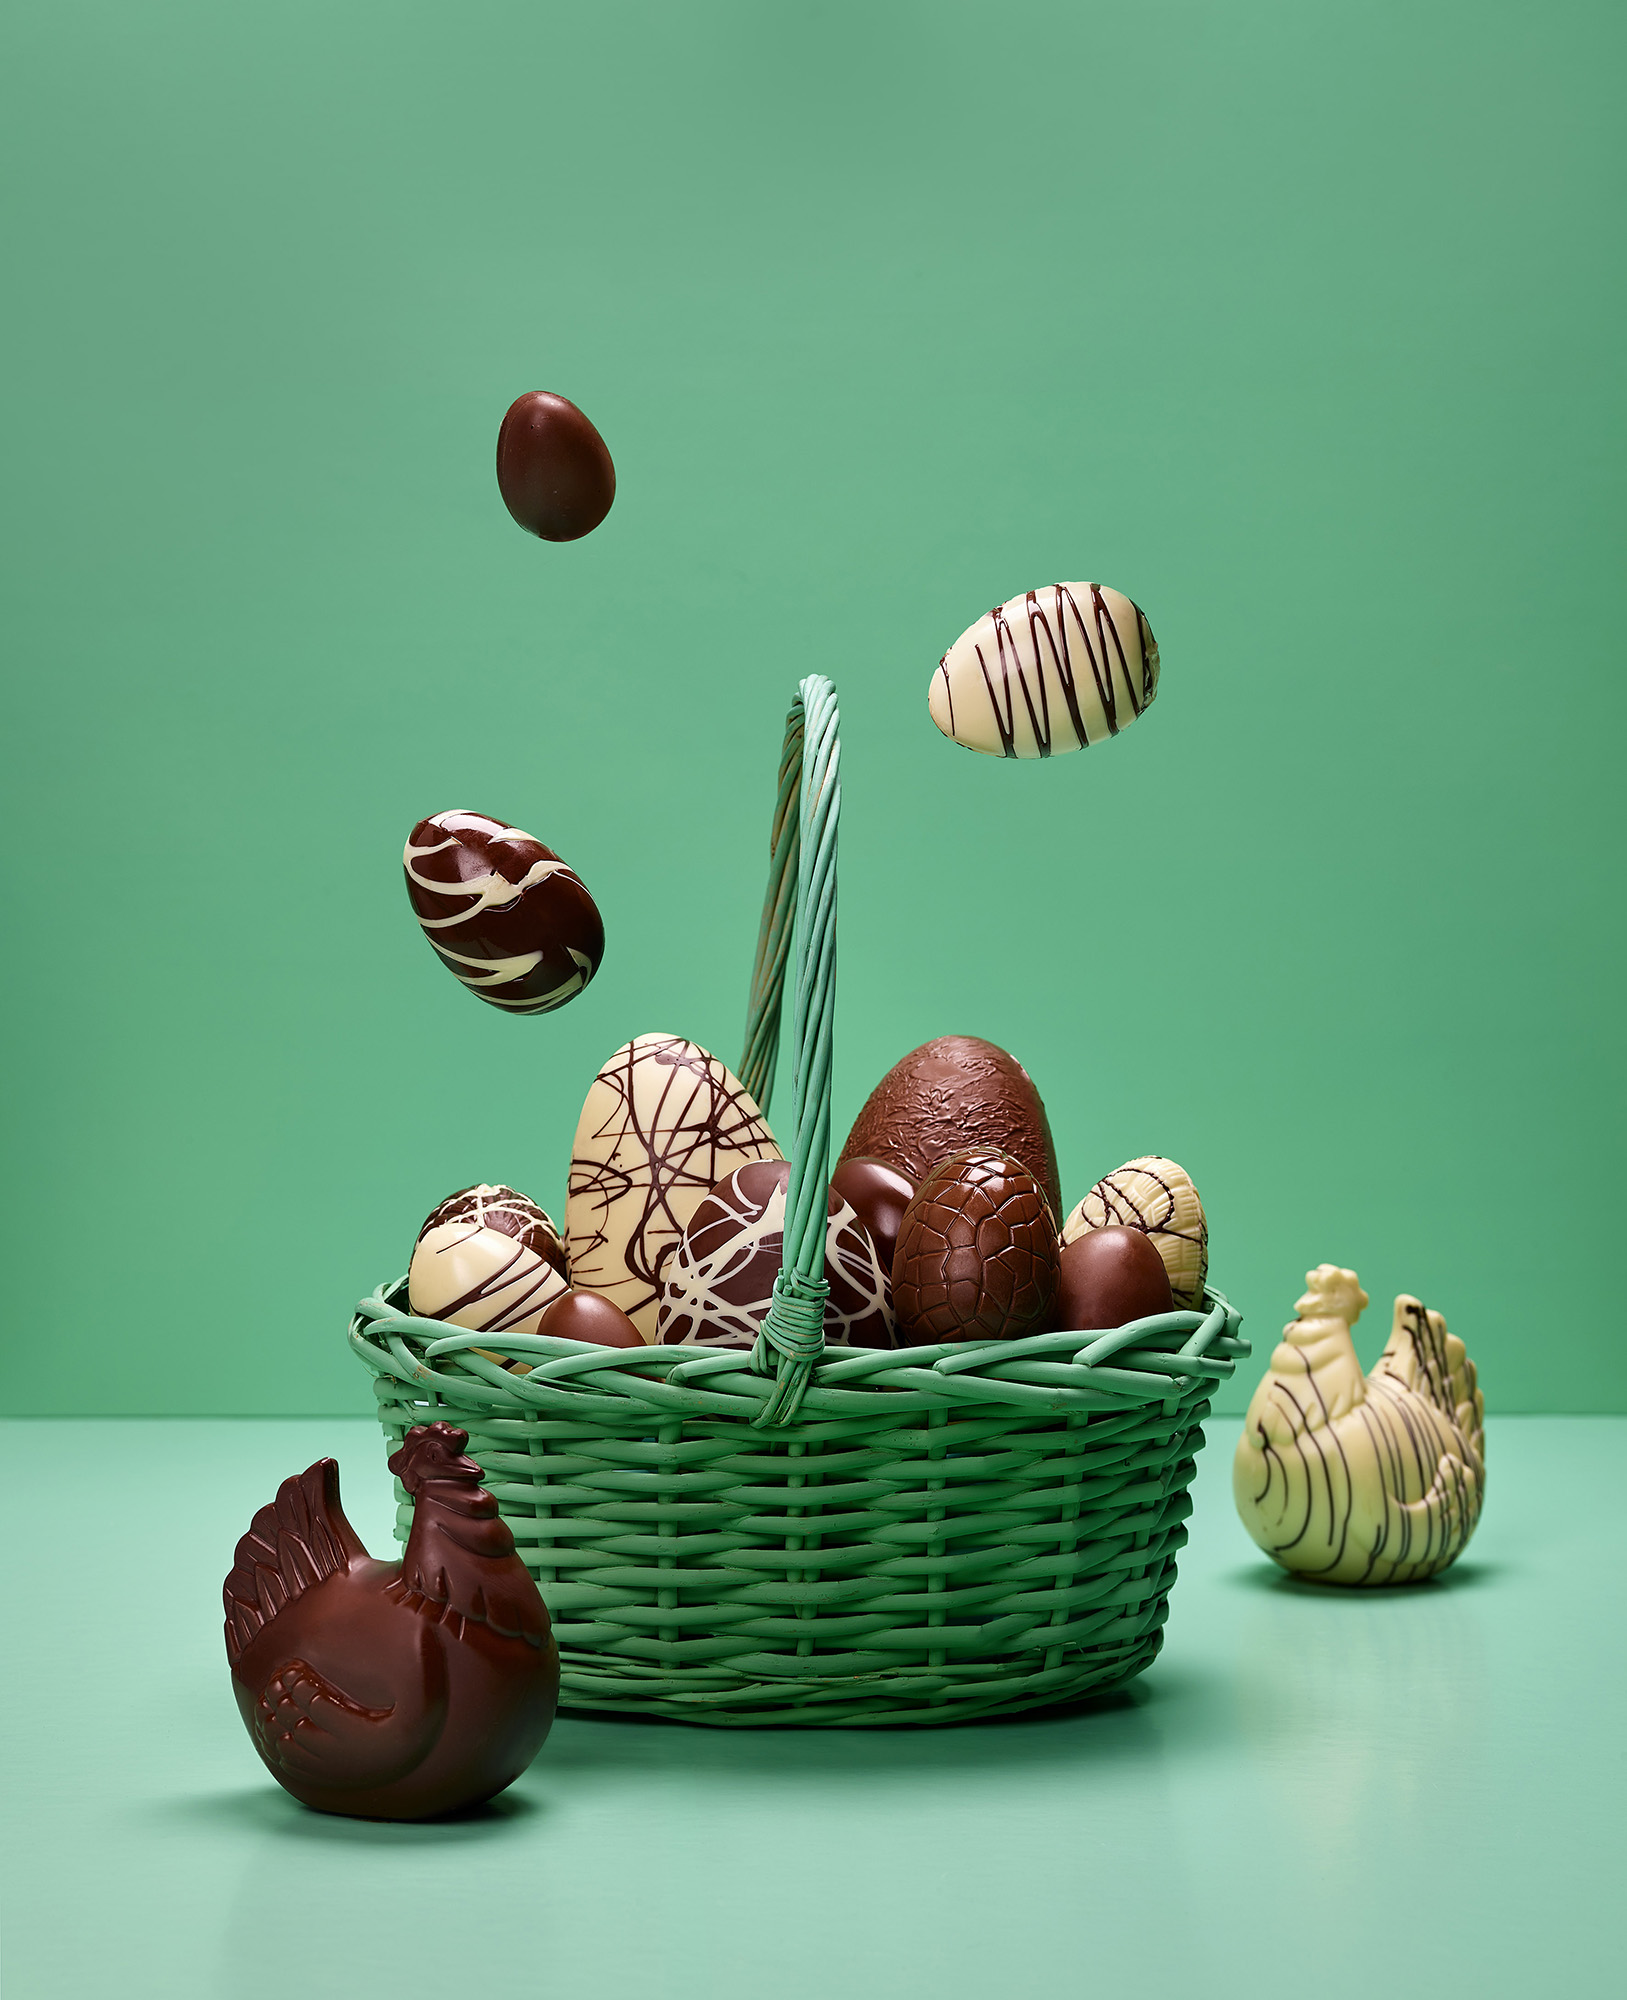 huevos de pascua, Artepan cartel advertaising photography